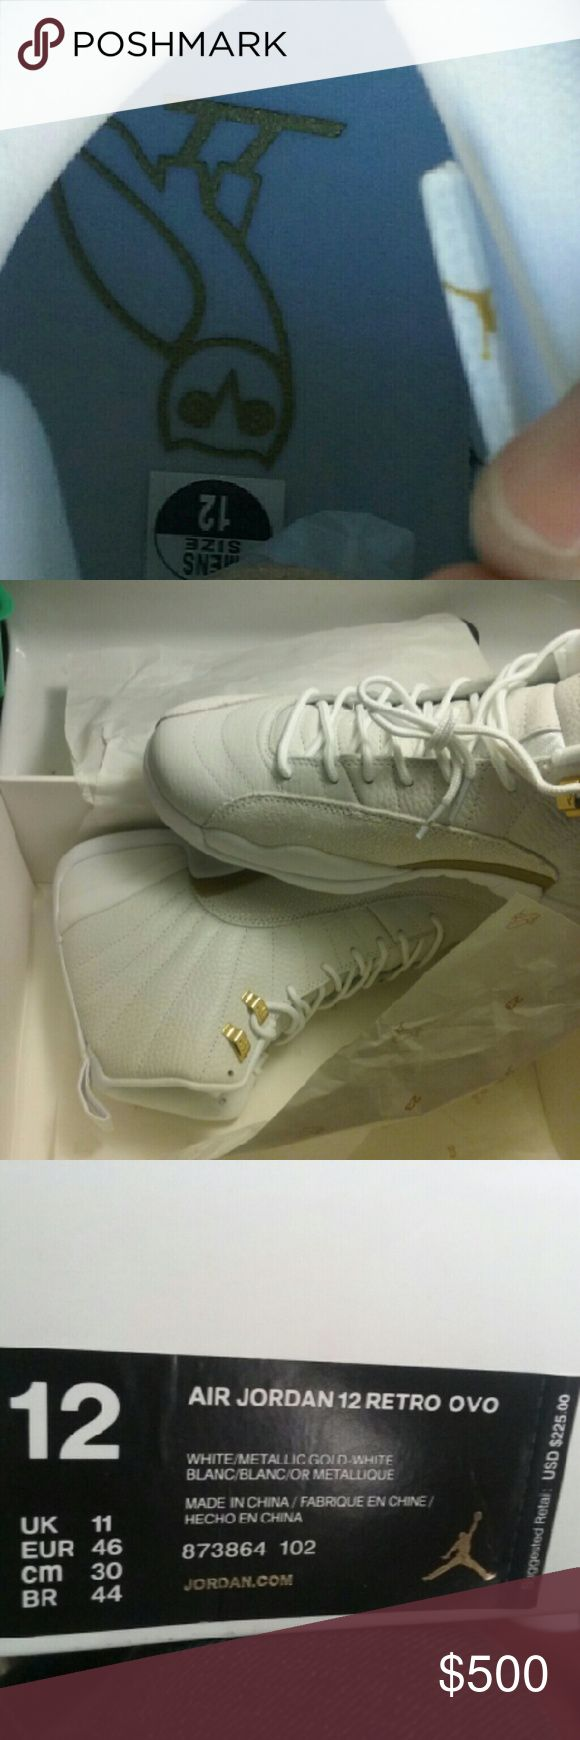 Jordan OvO Retro 12 SIZES 8-12 ONLY BNiB Comes with Nike Receipt  Only sizes 8-12 available (NO GS/13+)  Satisfaction Guaranteed    Square cash goods only  No Scam $449shipped Contact 9377298364 Jordan  Shoes Sneakers